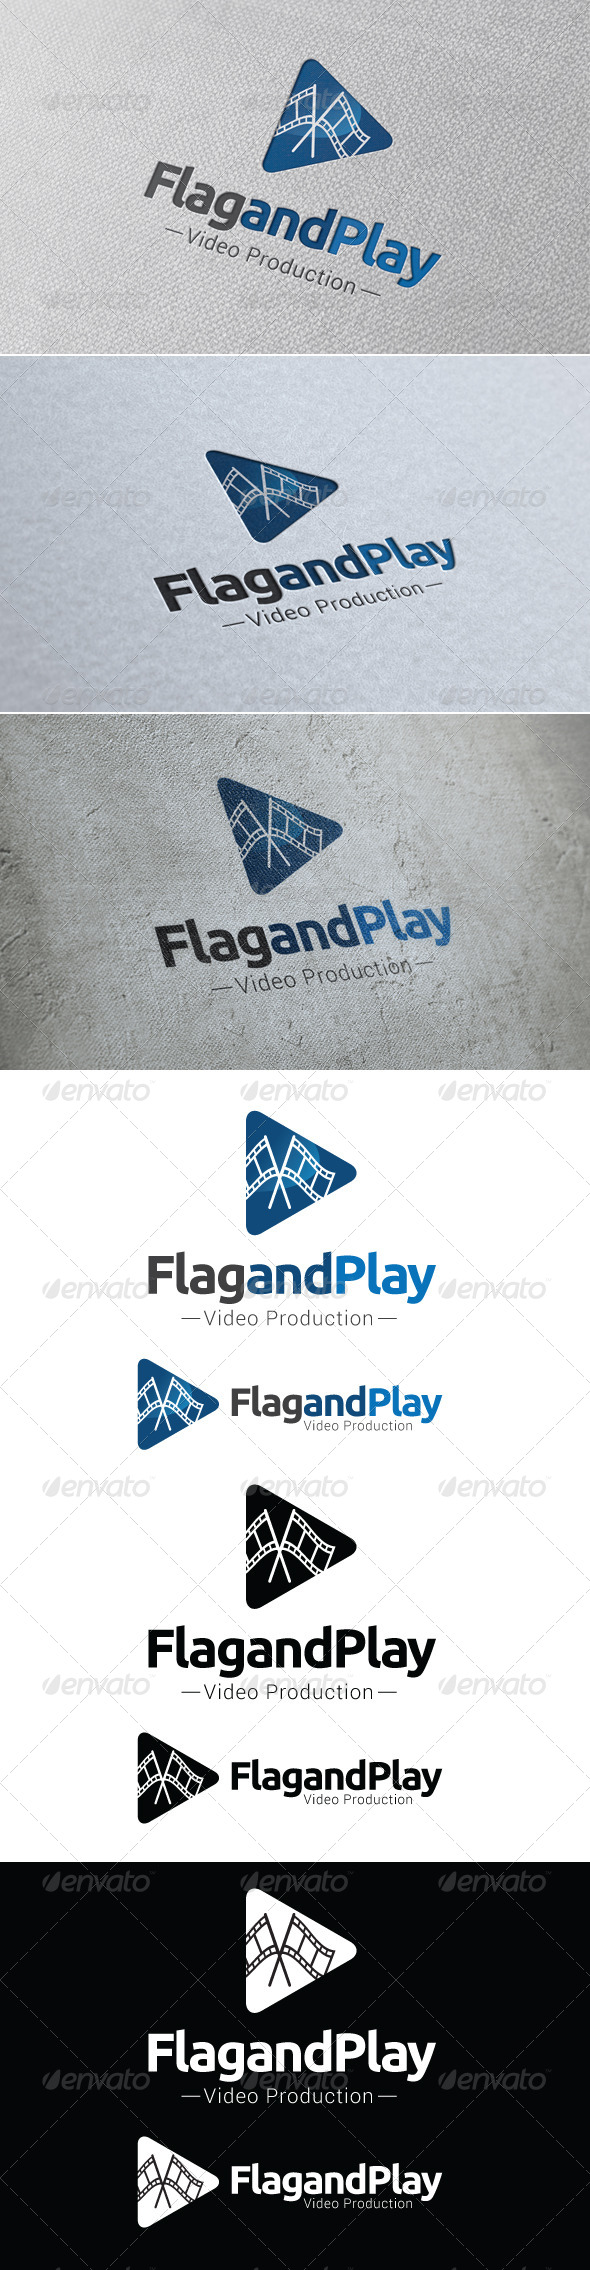 Flag and Play Logo Template